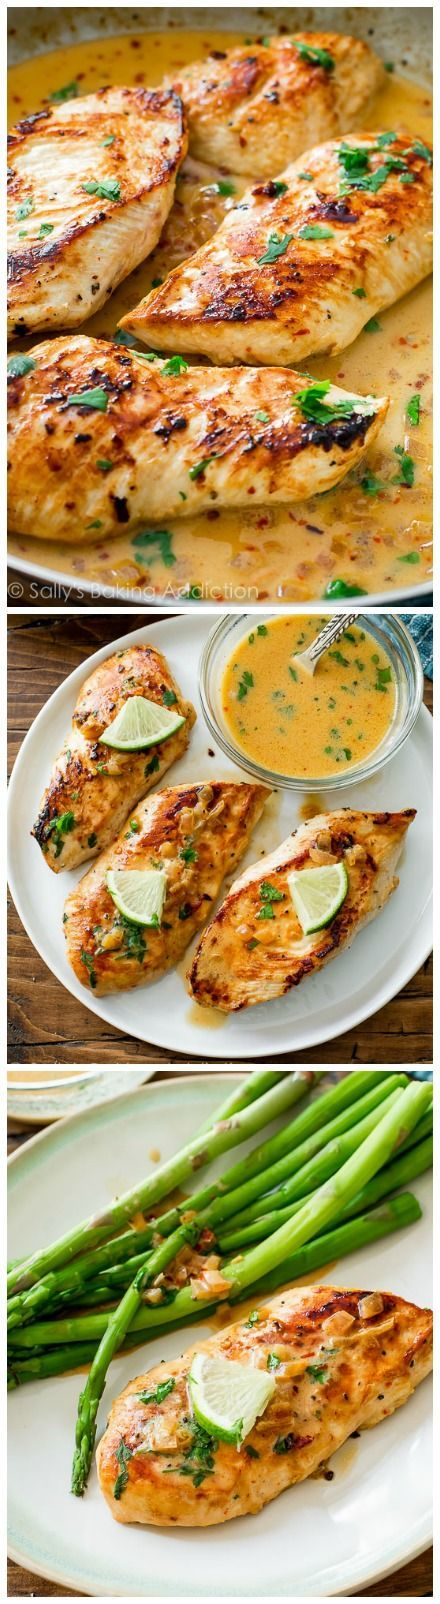 Skillet Chicken with Cilantro Lime Sauce